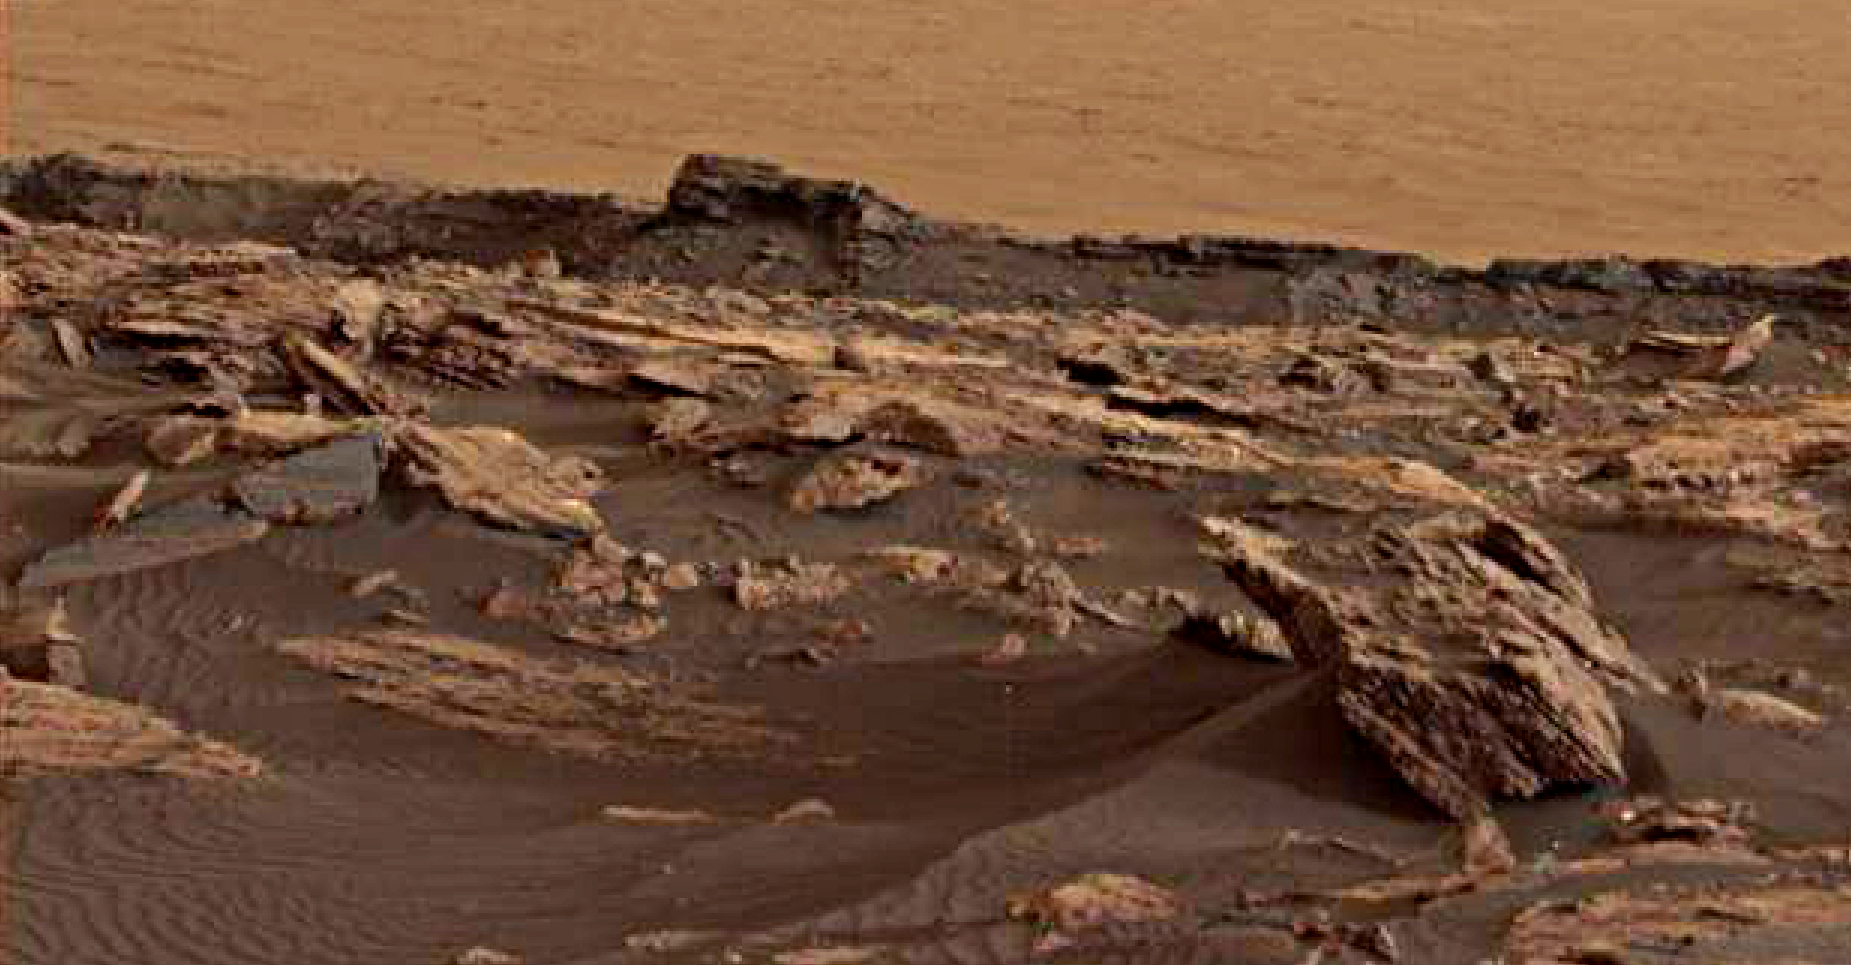 mars-sol-1508-anomaly-artifacts-1-was-life-on-mars